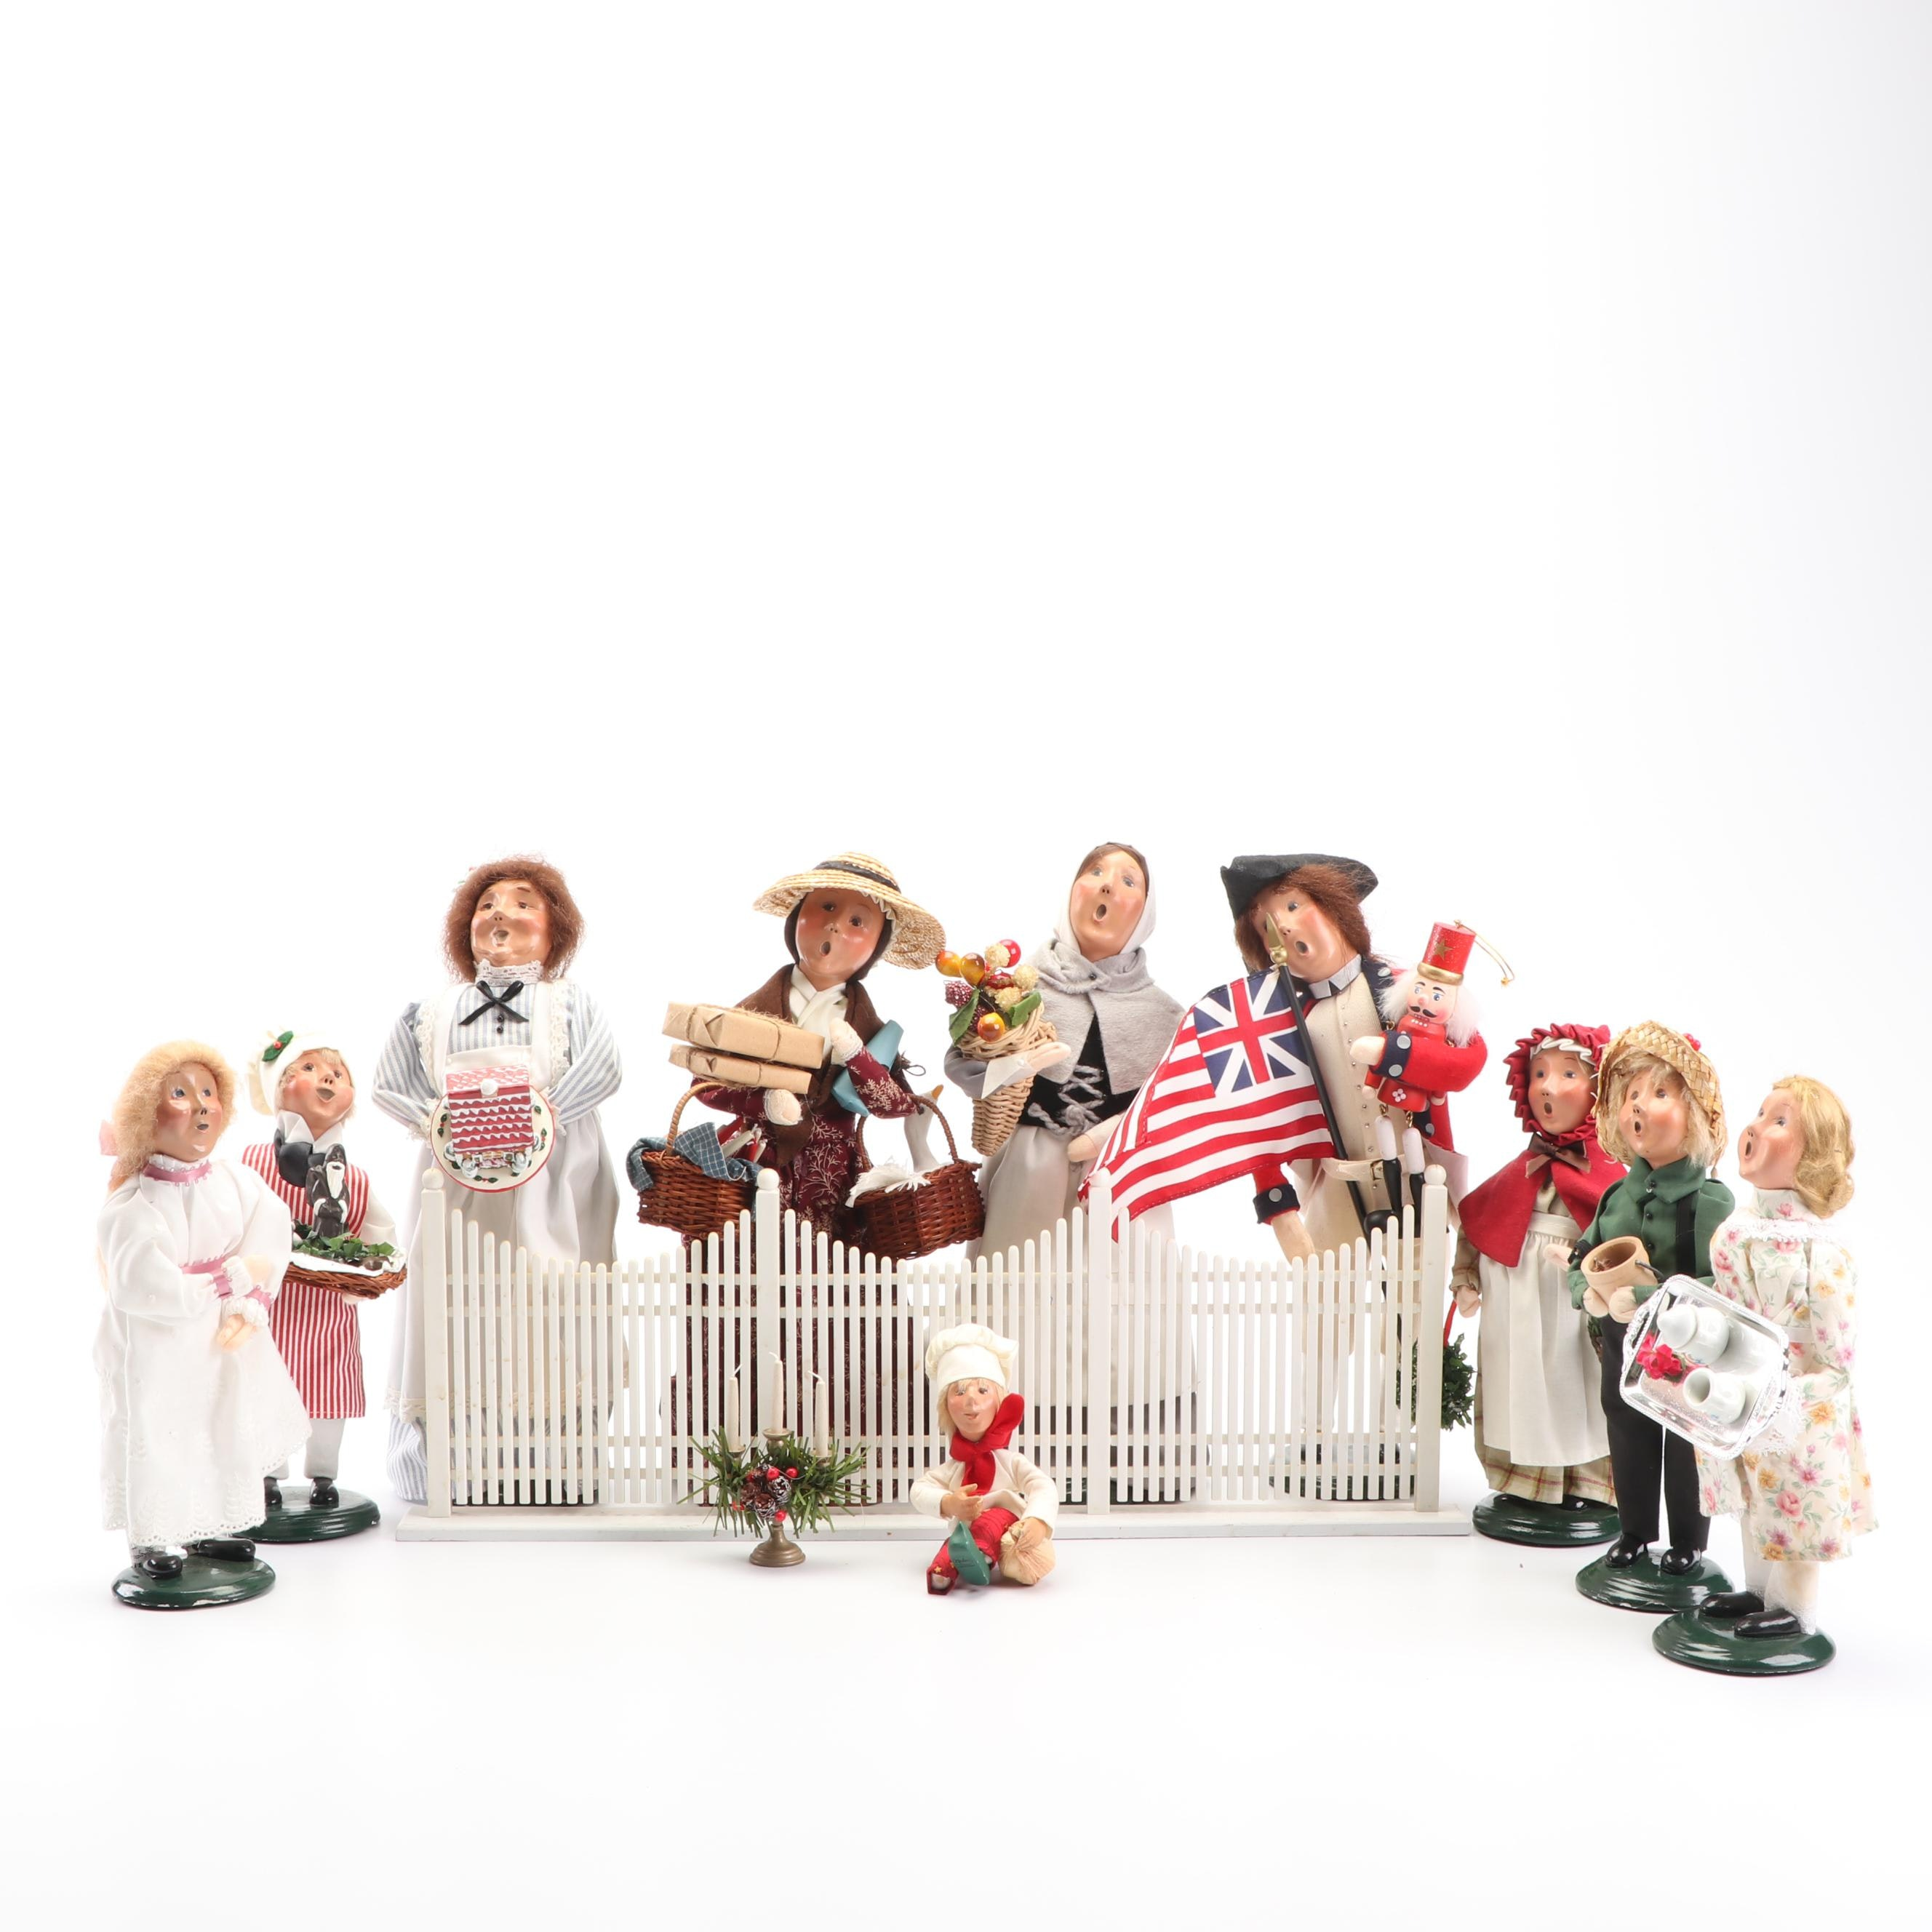 Byers' Choice Carolers and Fence Featuring Signed Caroler and First Edition